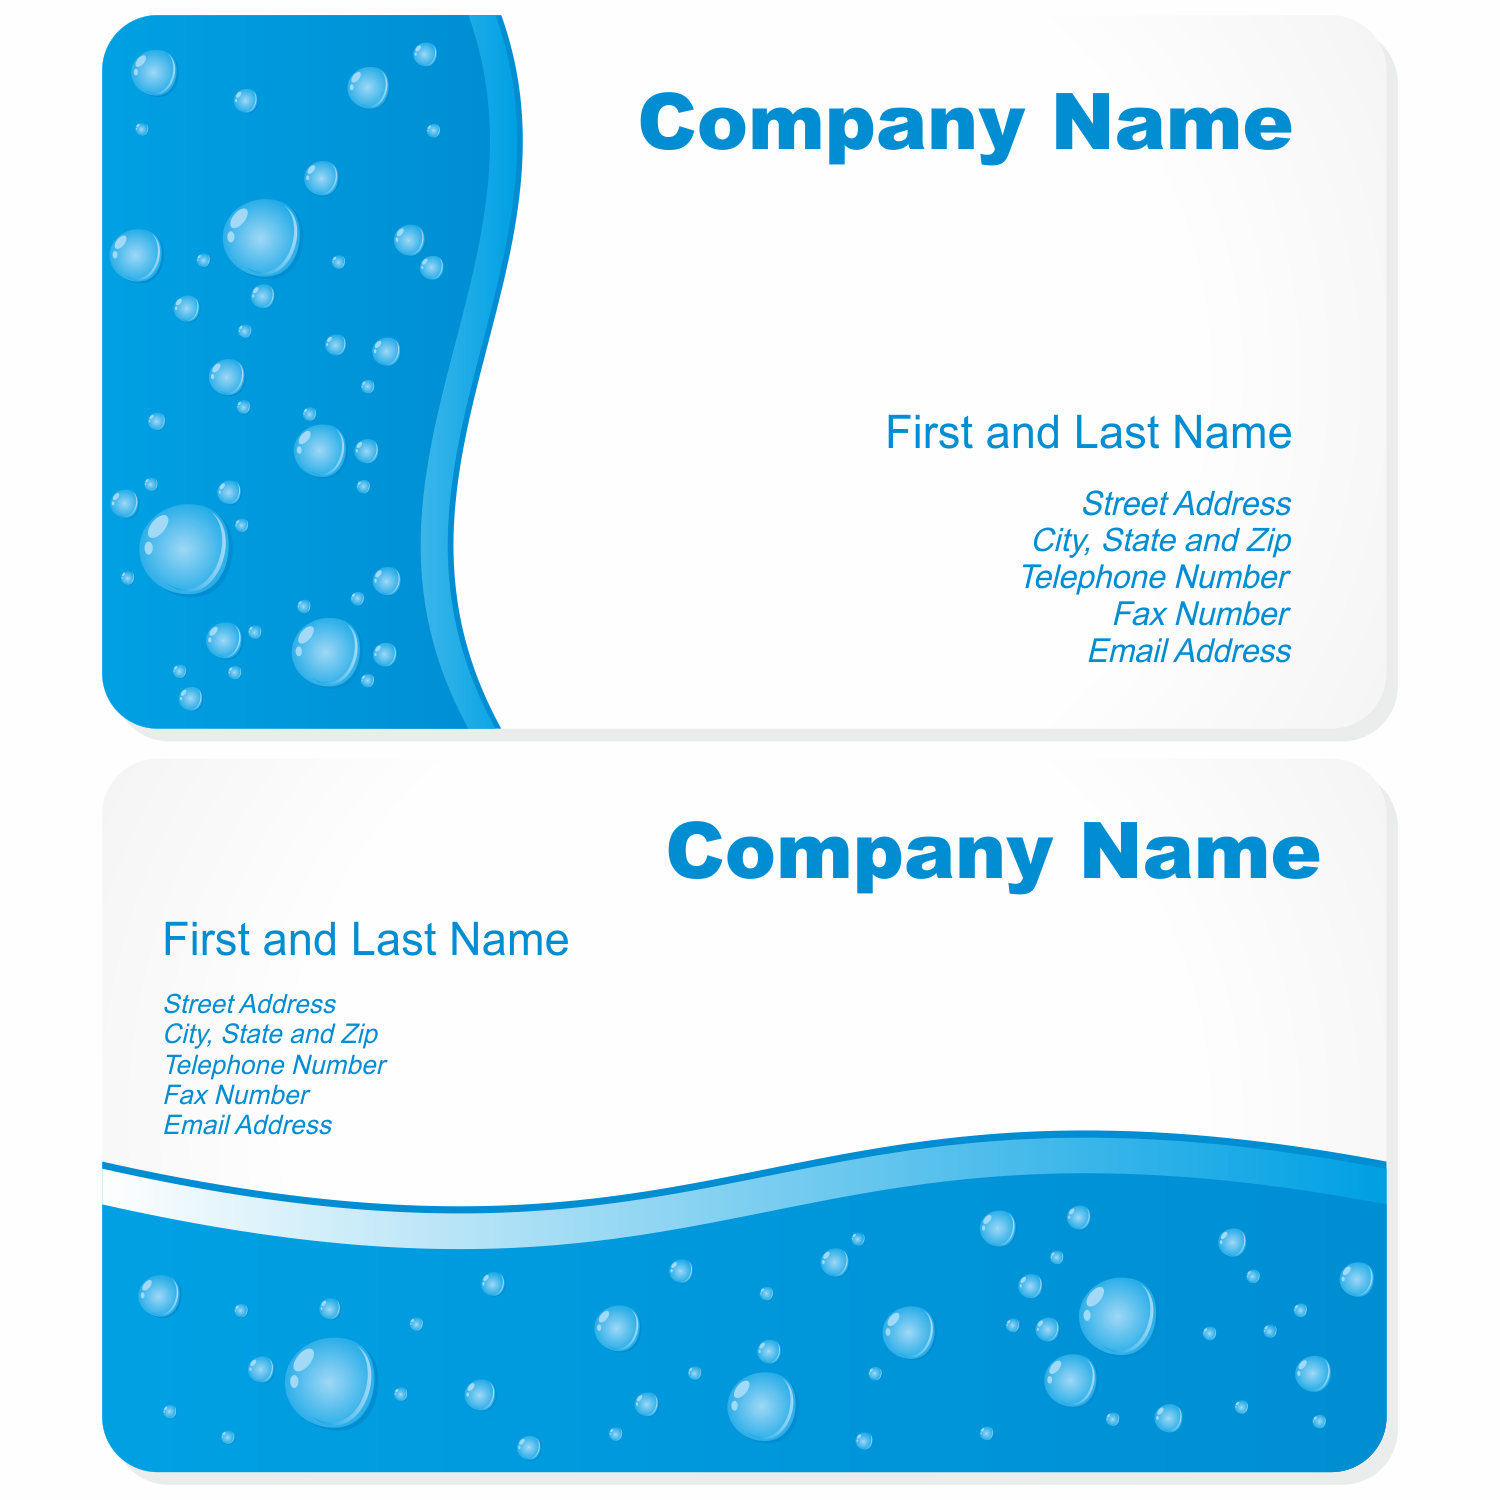 Template for business cards free download dawaydabrowa template for business cards free download fbccfo Gallery